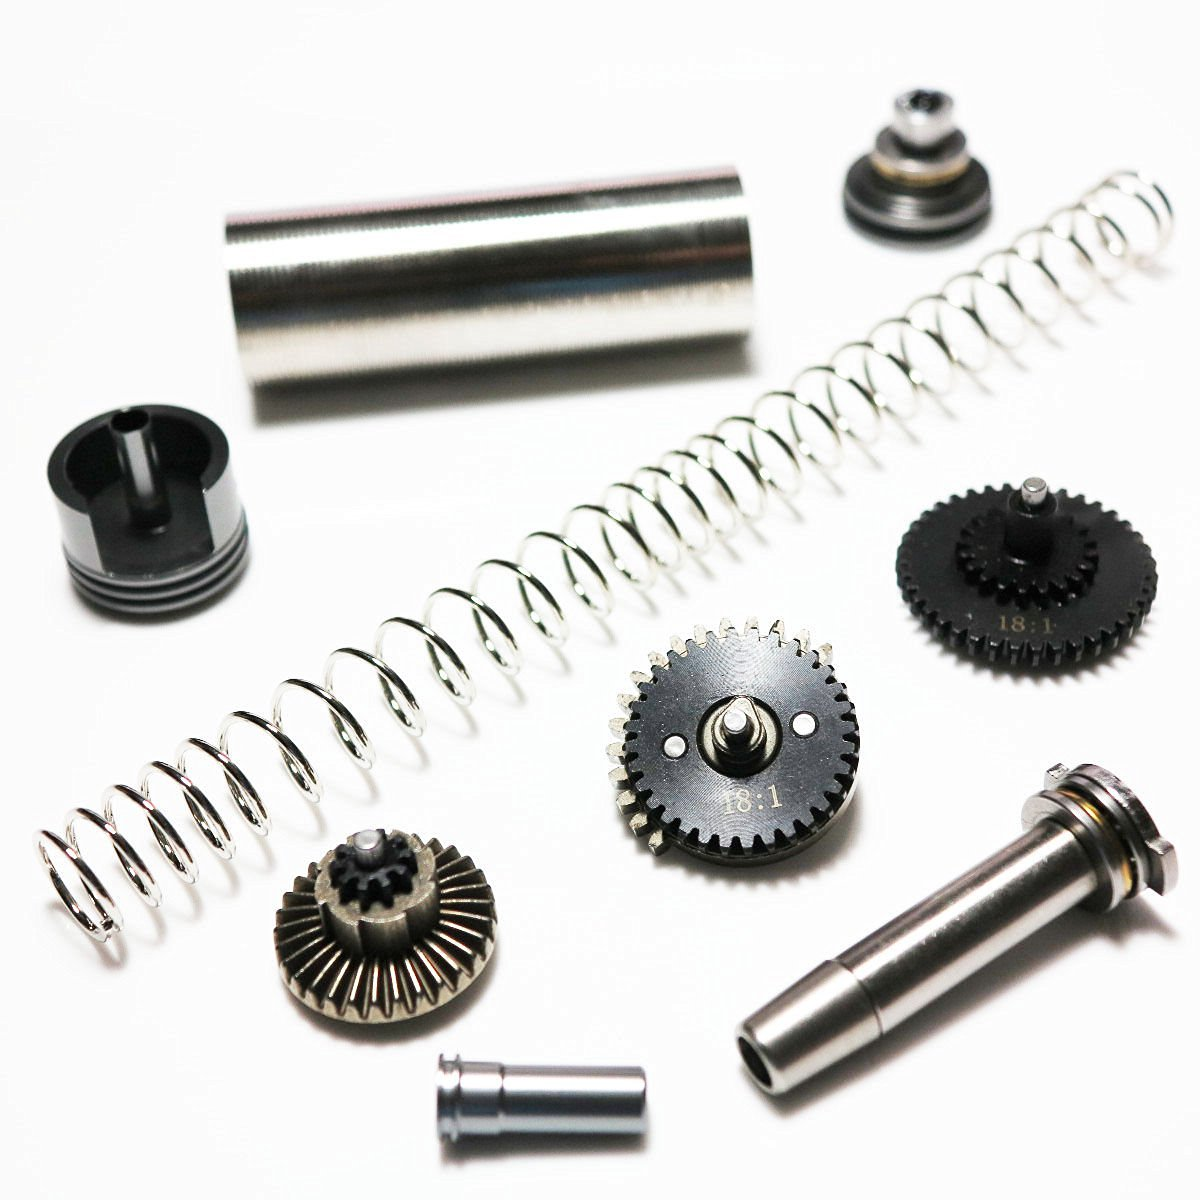 AEG Airsoft Wargame Shooting Gear Army Force Low Noise M-Series High Torque 18:1 Gear Tune-Up Set